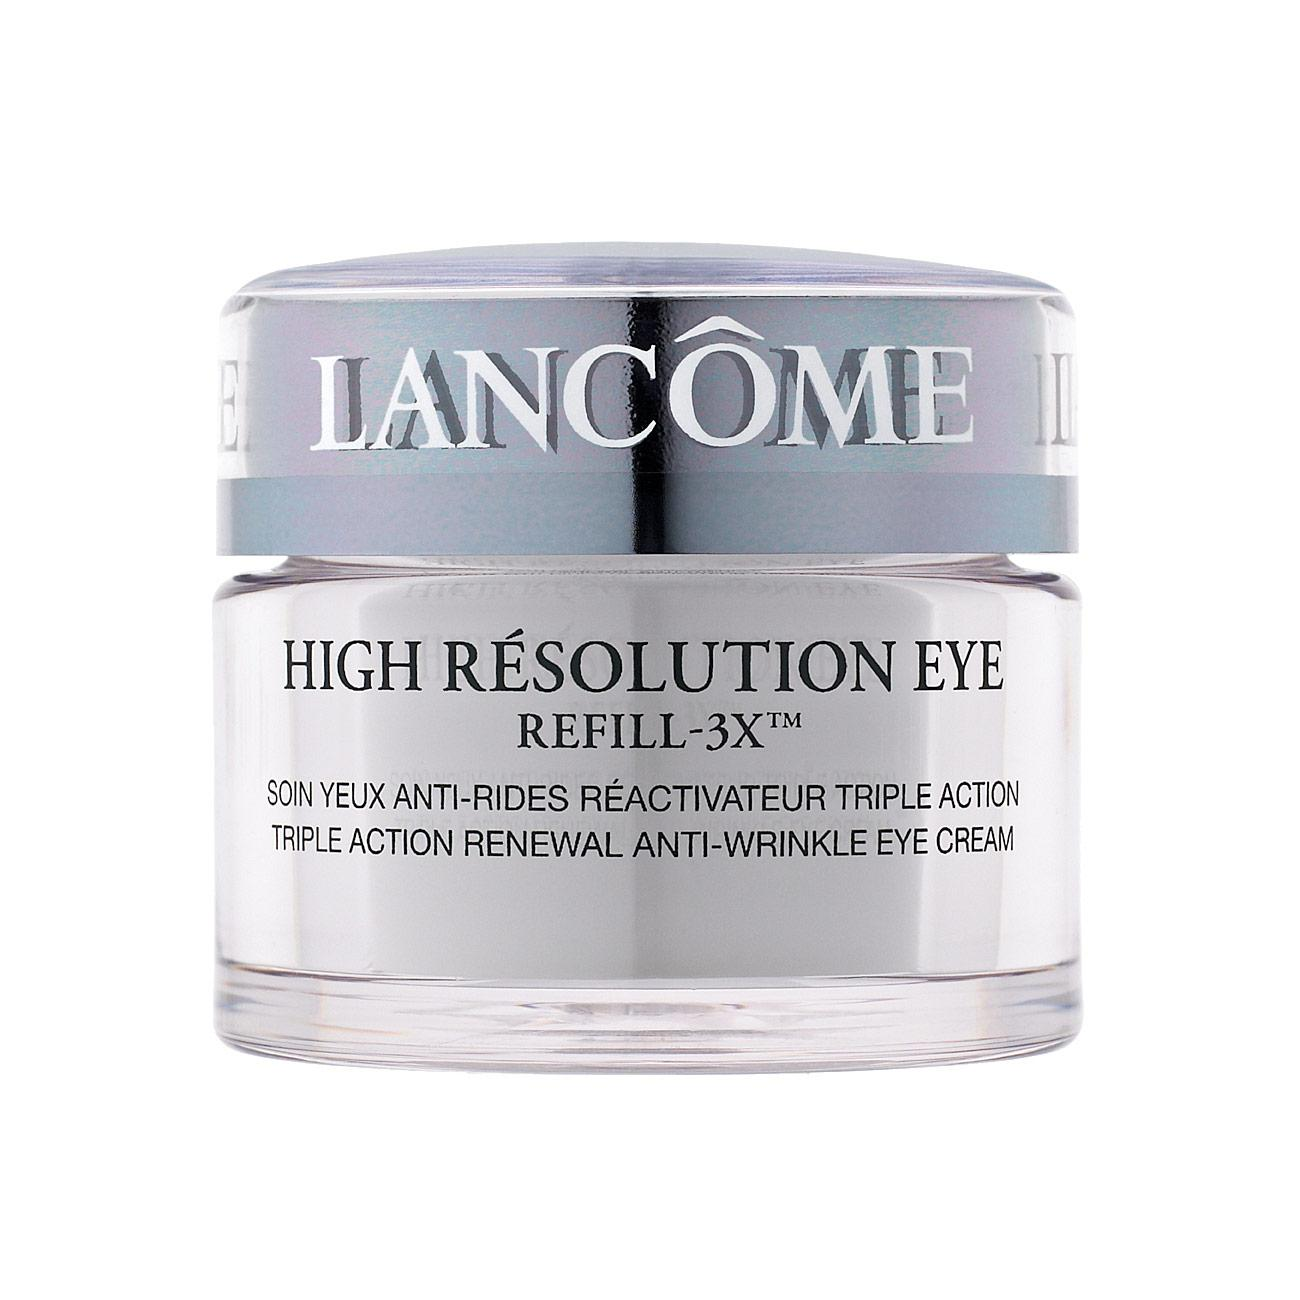 HIGH RÉSOLUTION EYE REFILL-3X™